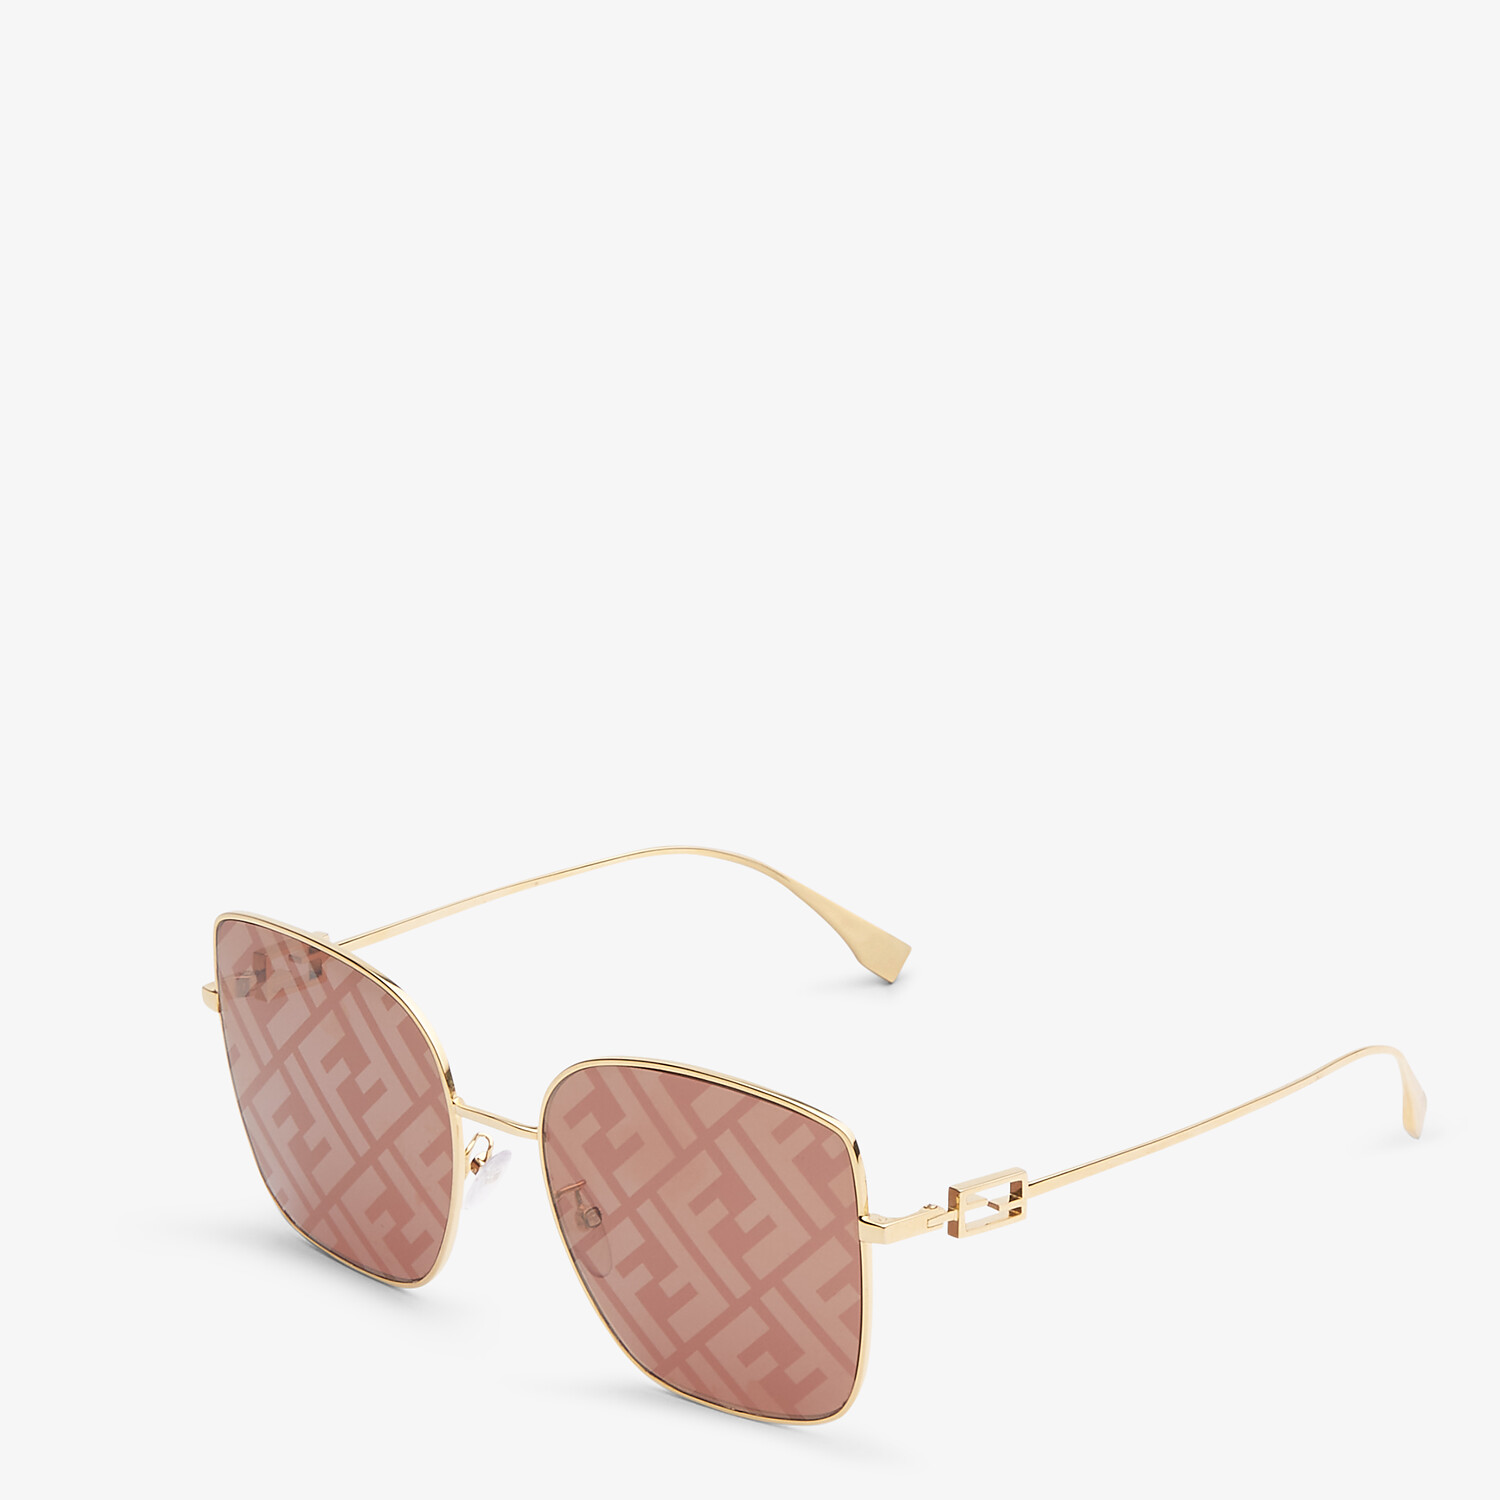 FENDI BAGUETTE - Sunglasses featuring brown lenses with FF logo - view 2 detail